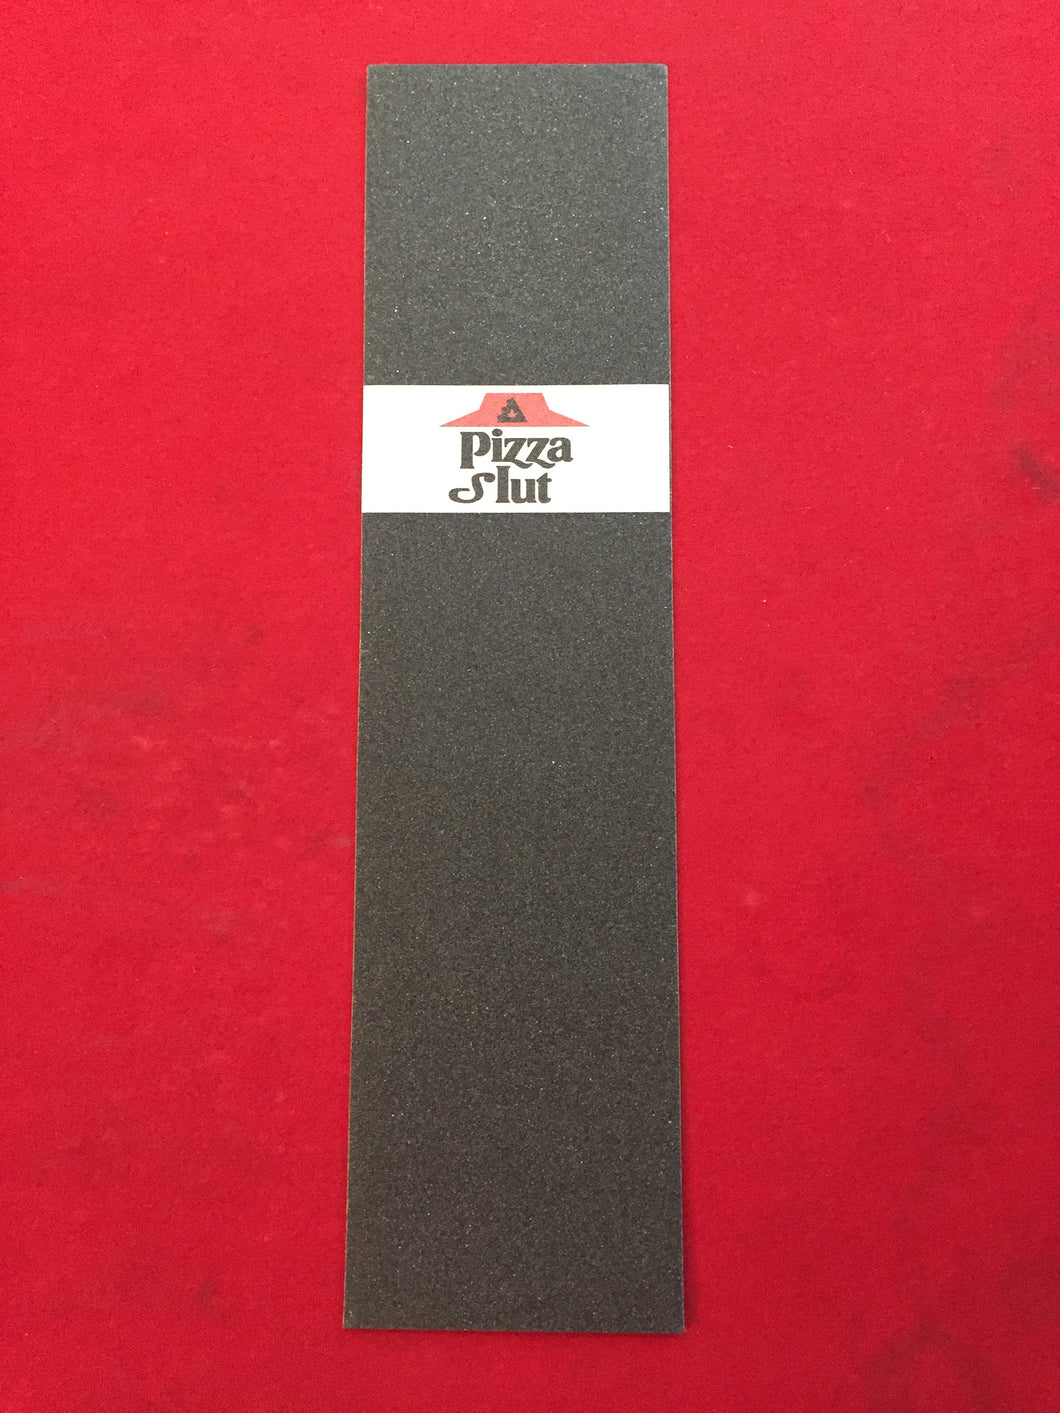 TRYNYTY Limited Pizza Slut Griptape (1 sheet)